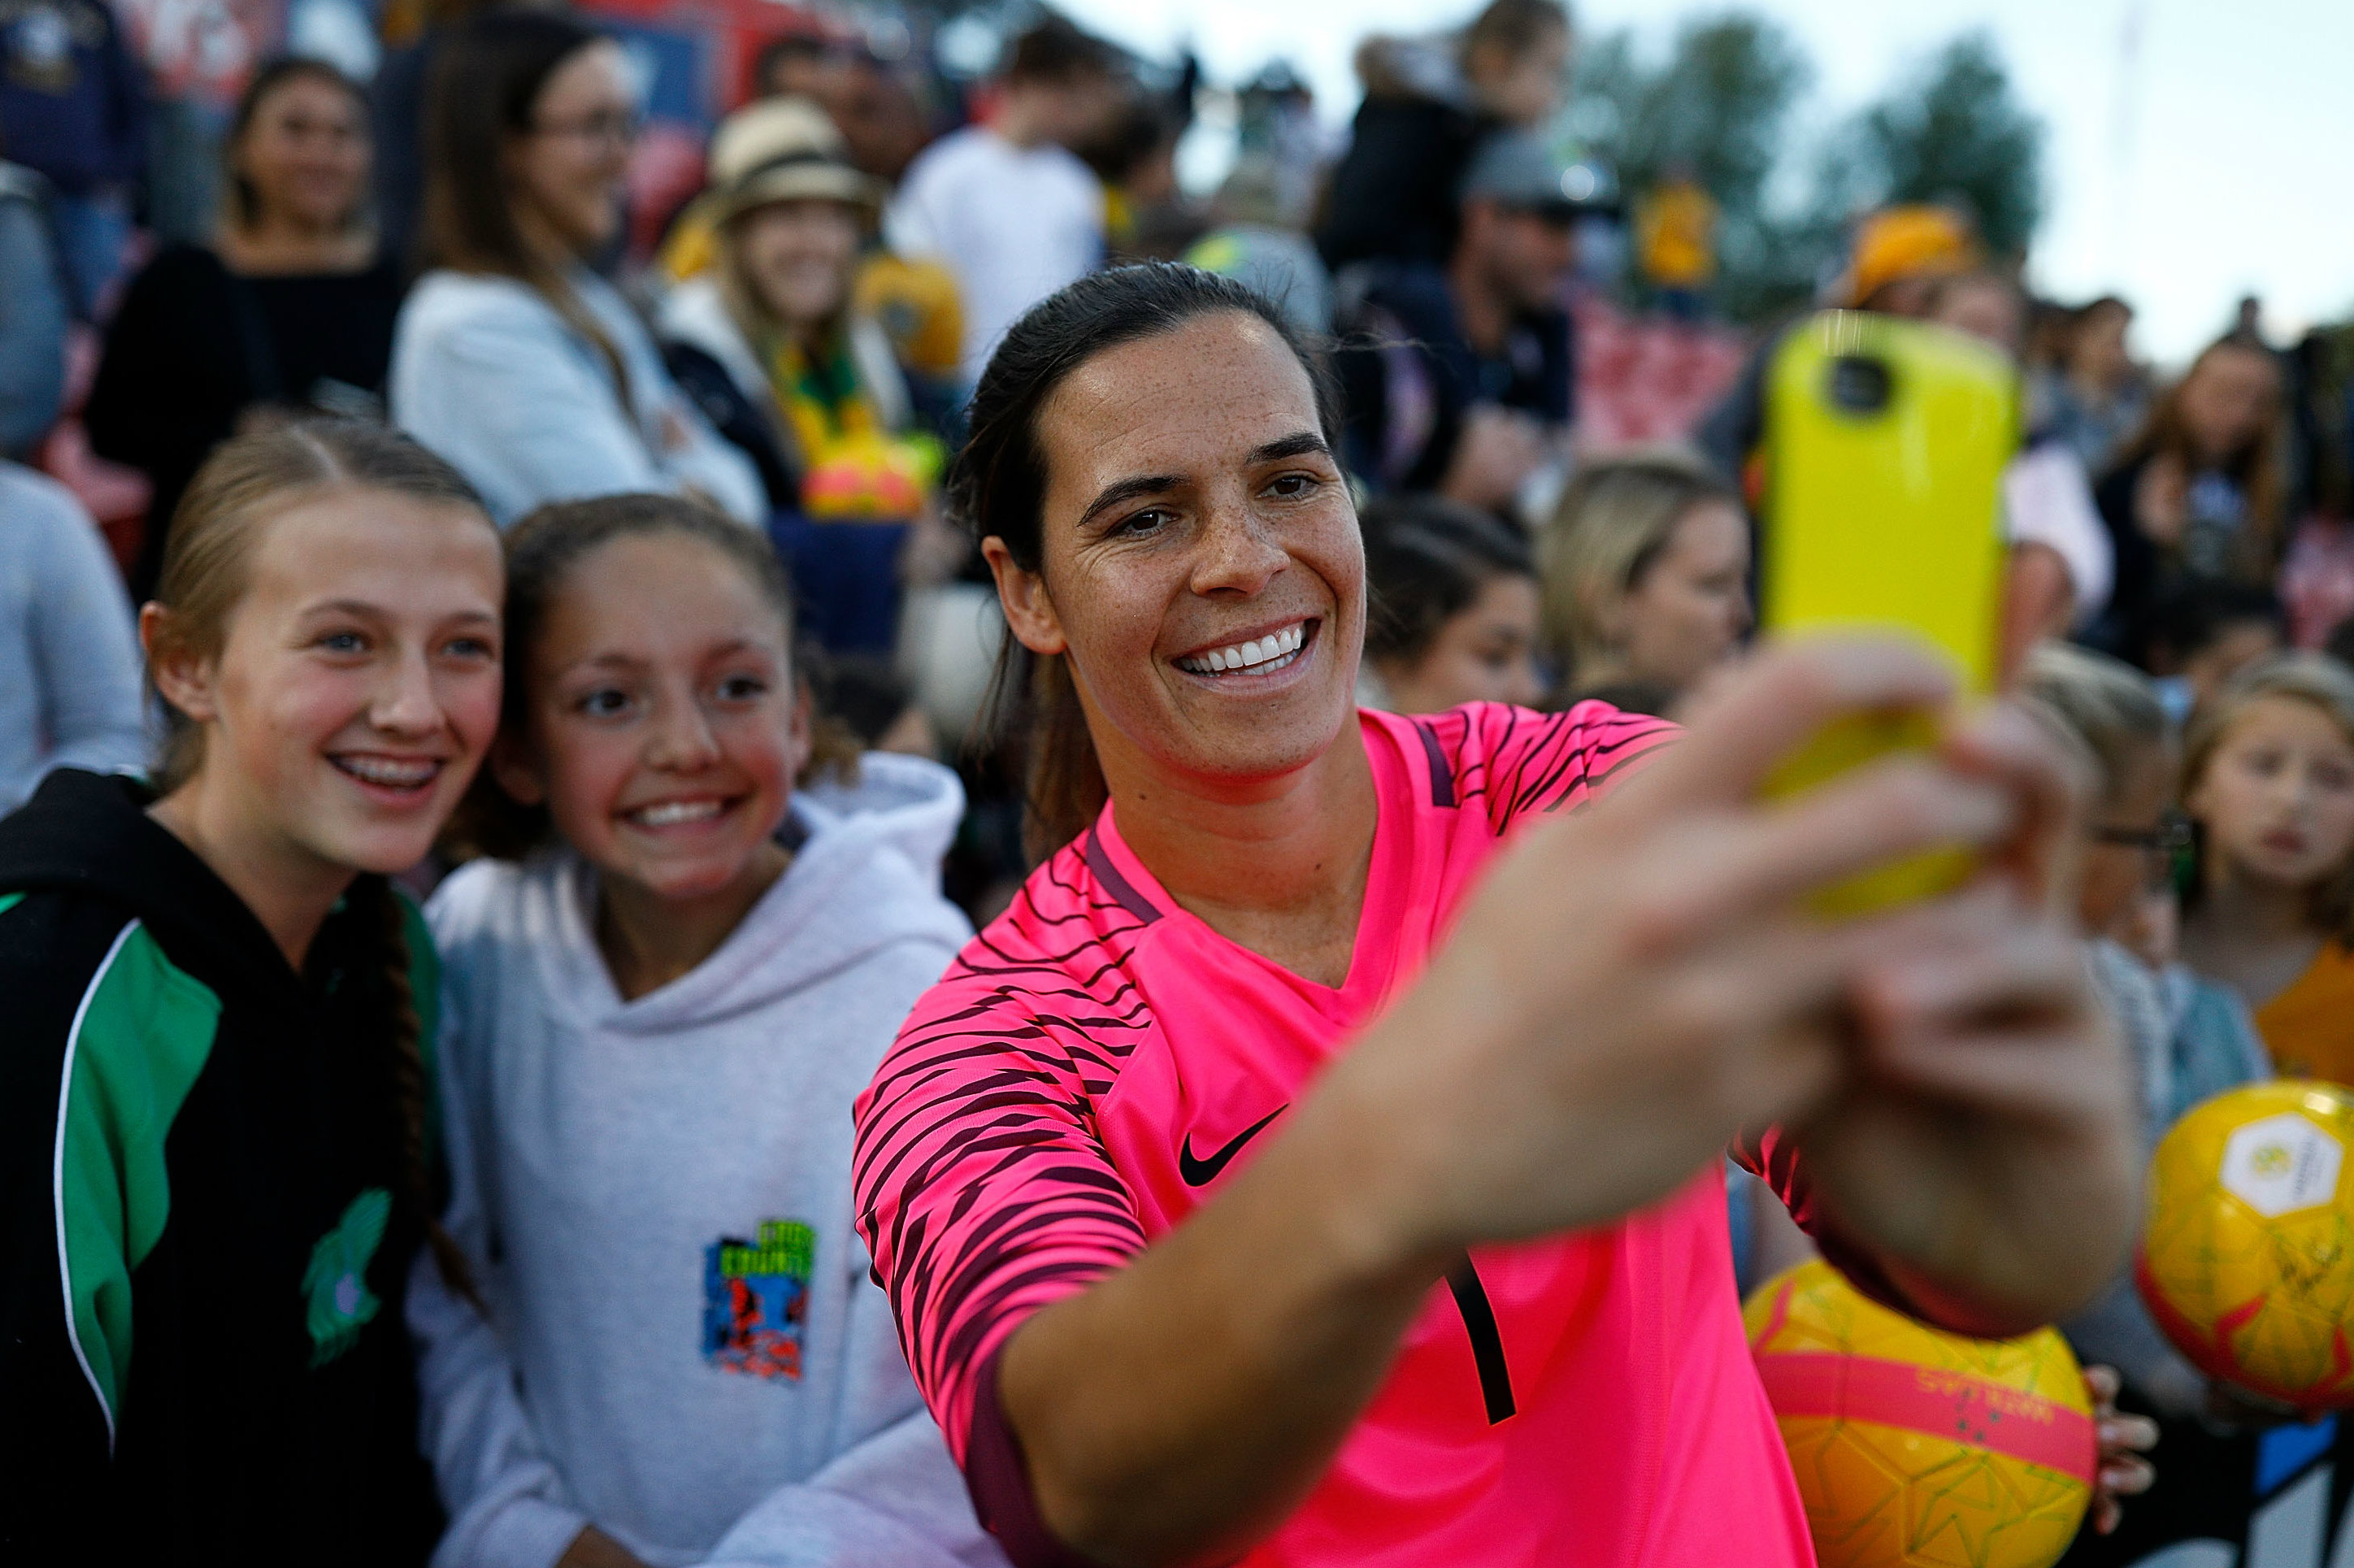 Westfield Matildas goalkeeper Lydia Williams takes a selfie with some fans.